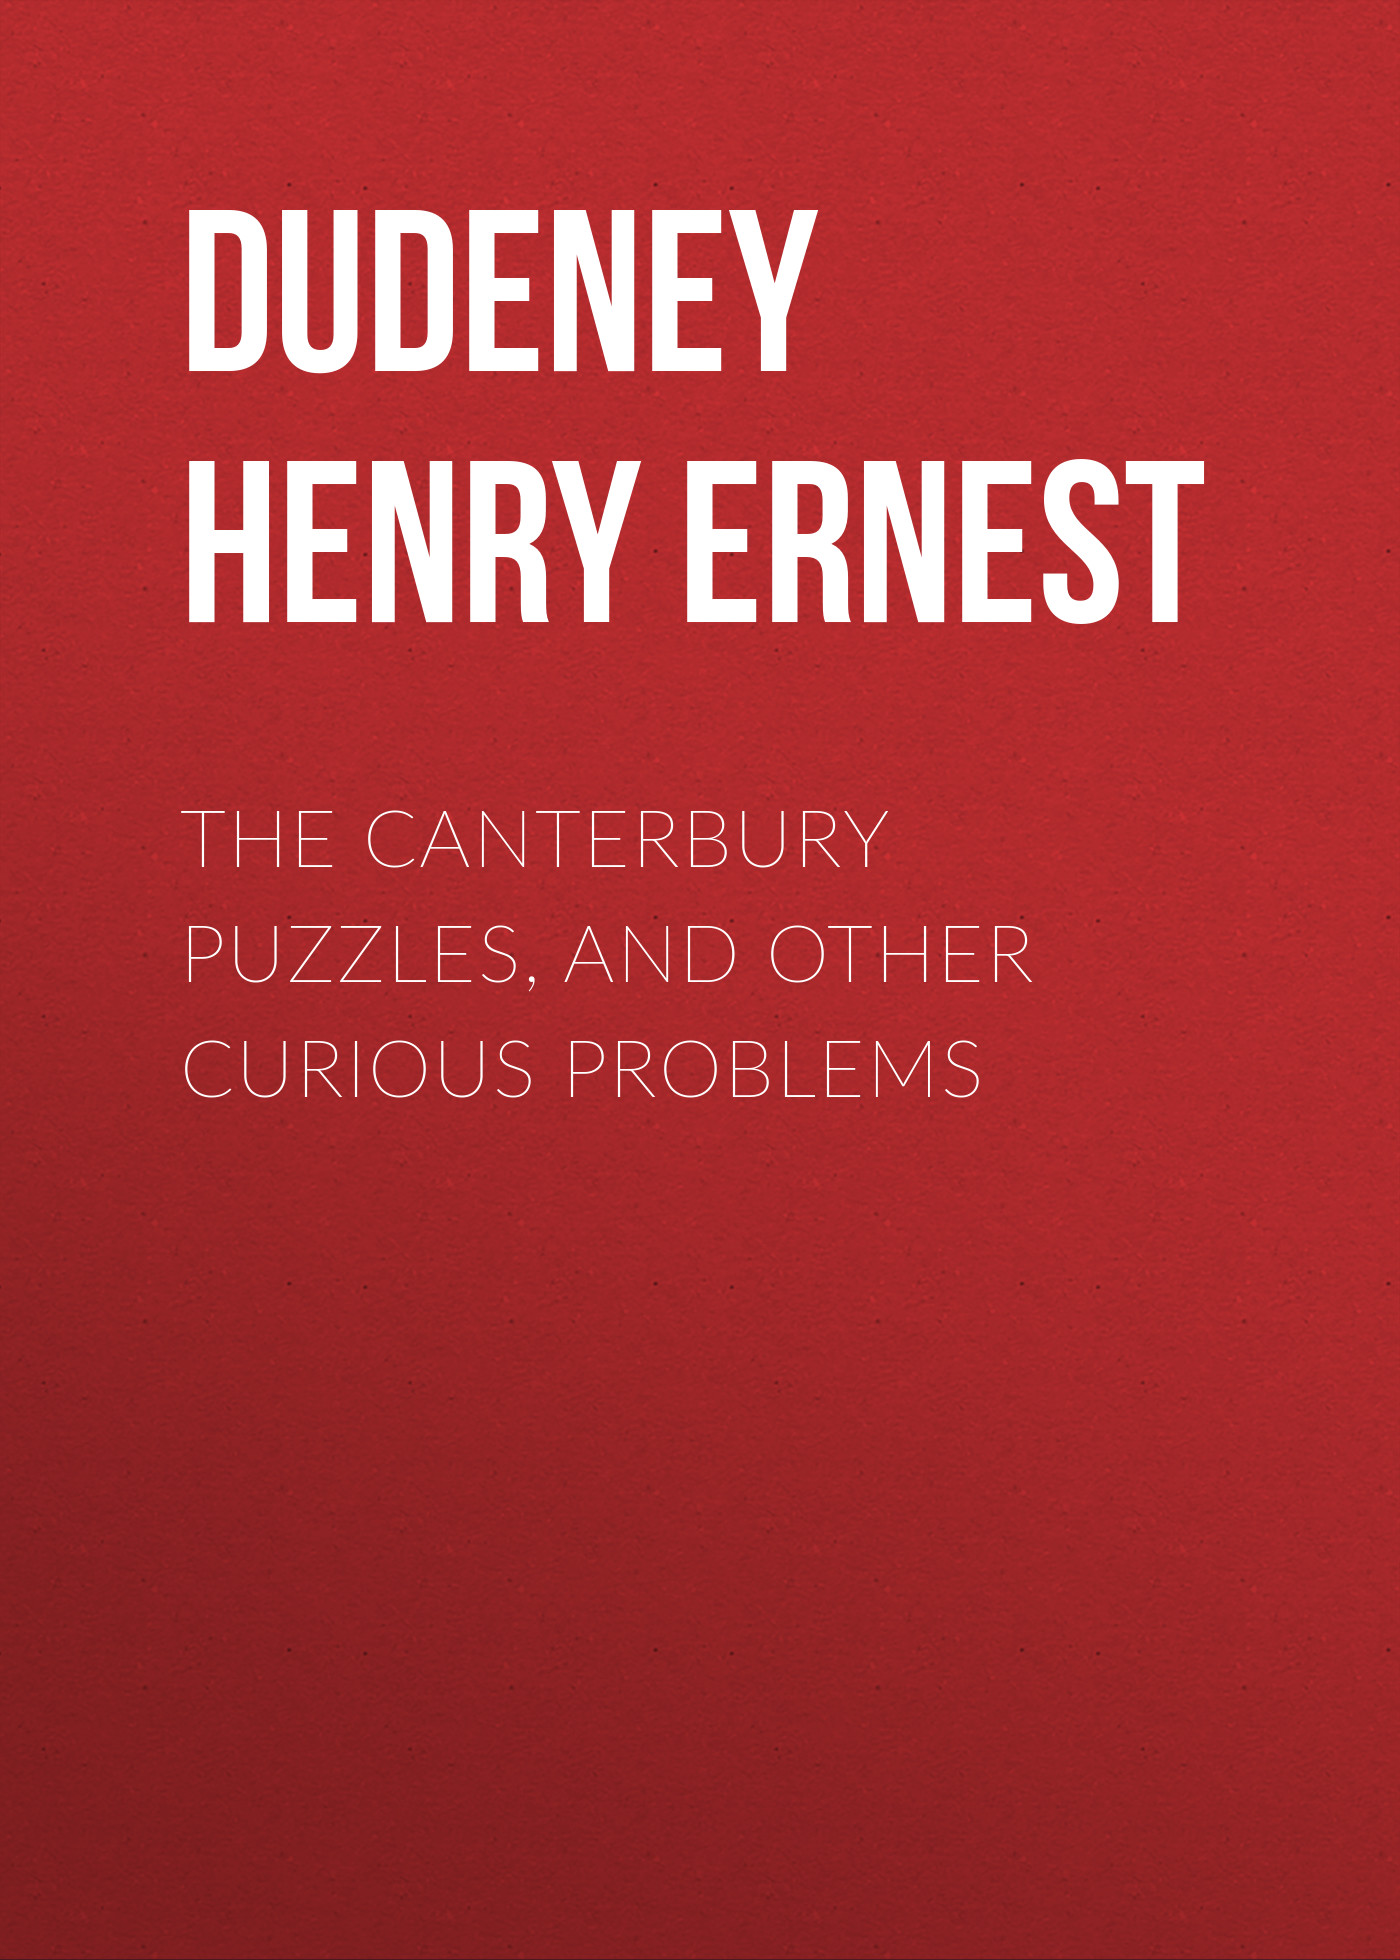 Dudeney Henry Ernest The Canterbury Puzzles, and Other Curious Problems canterbury advantage shorts